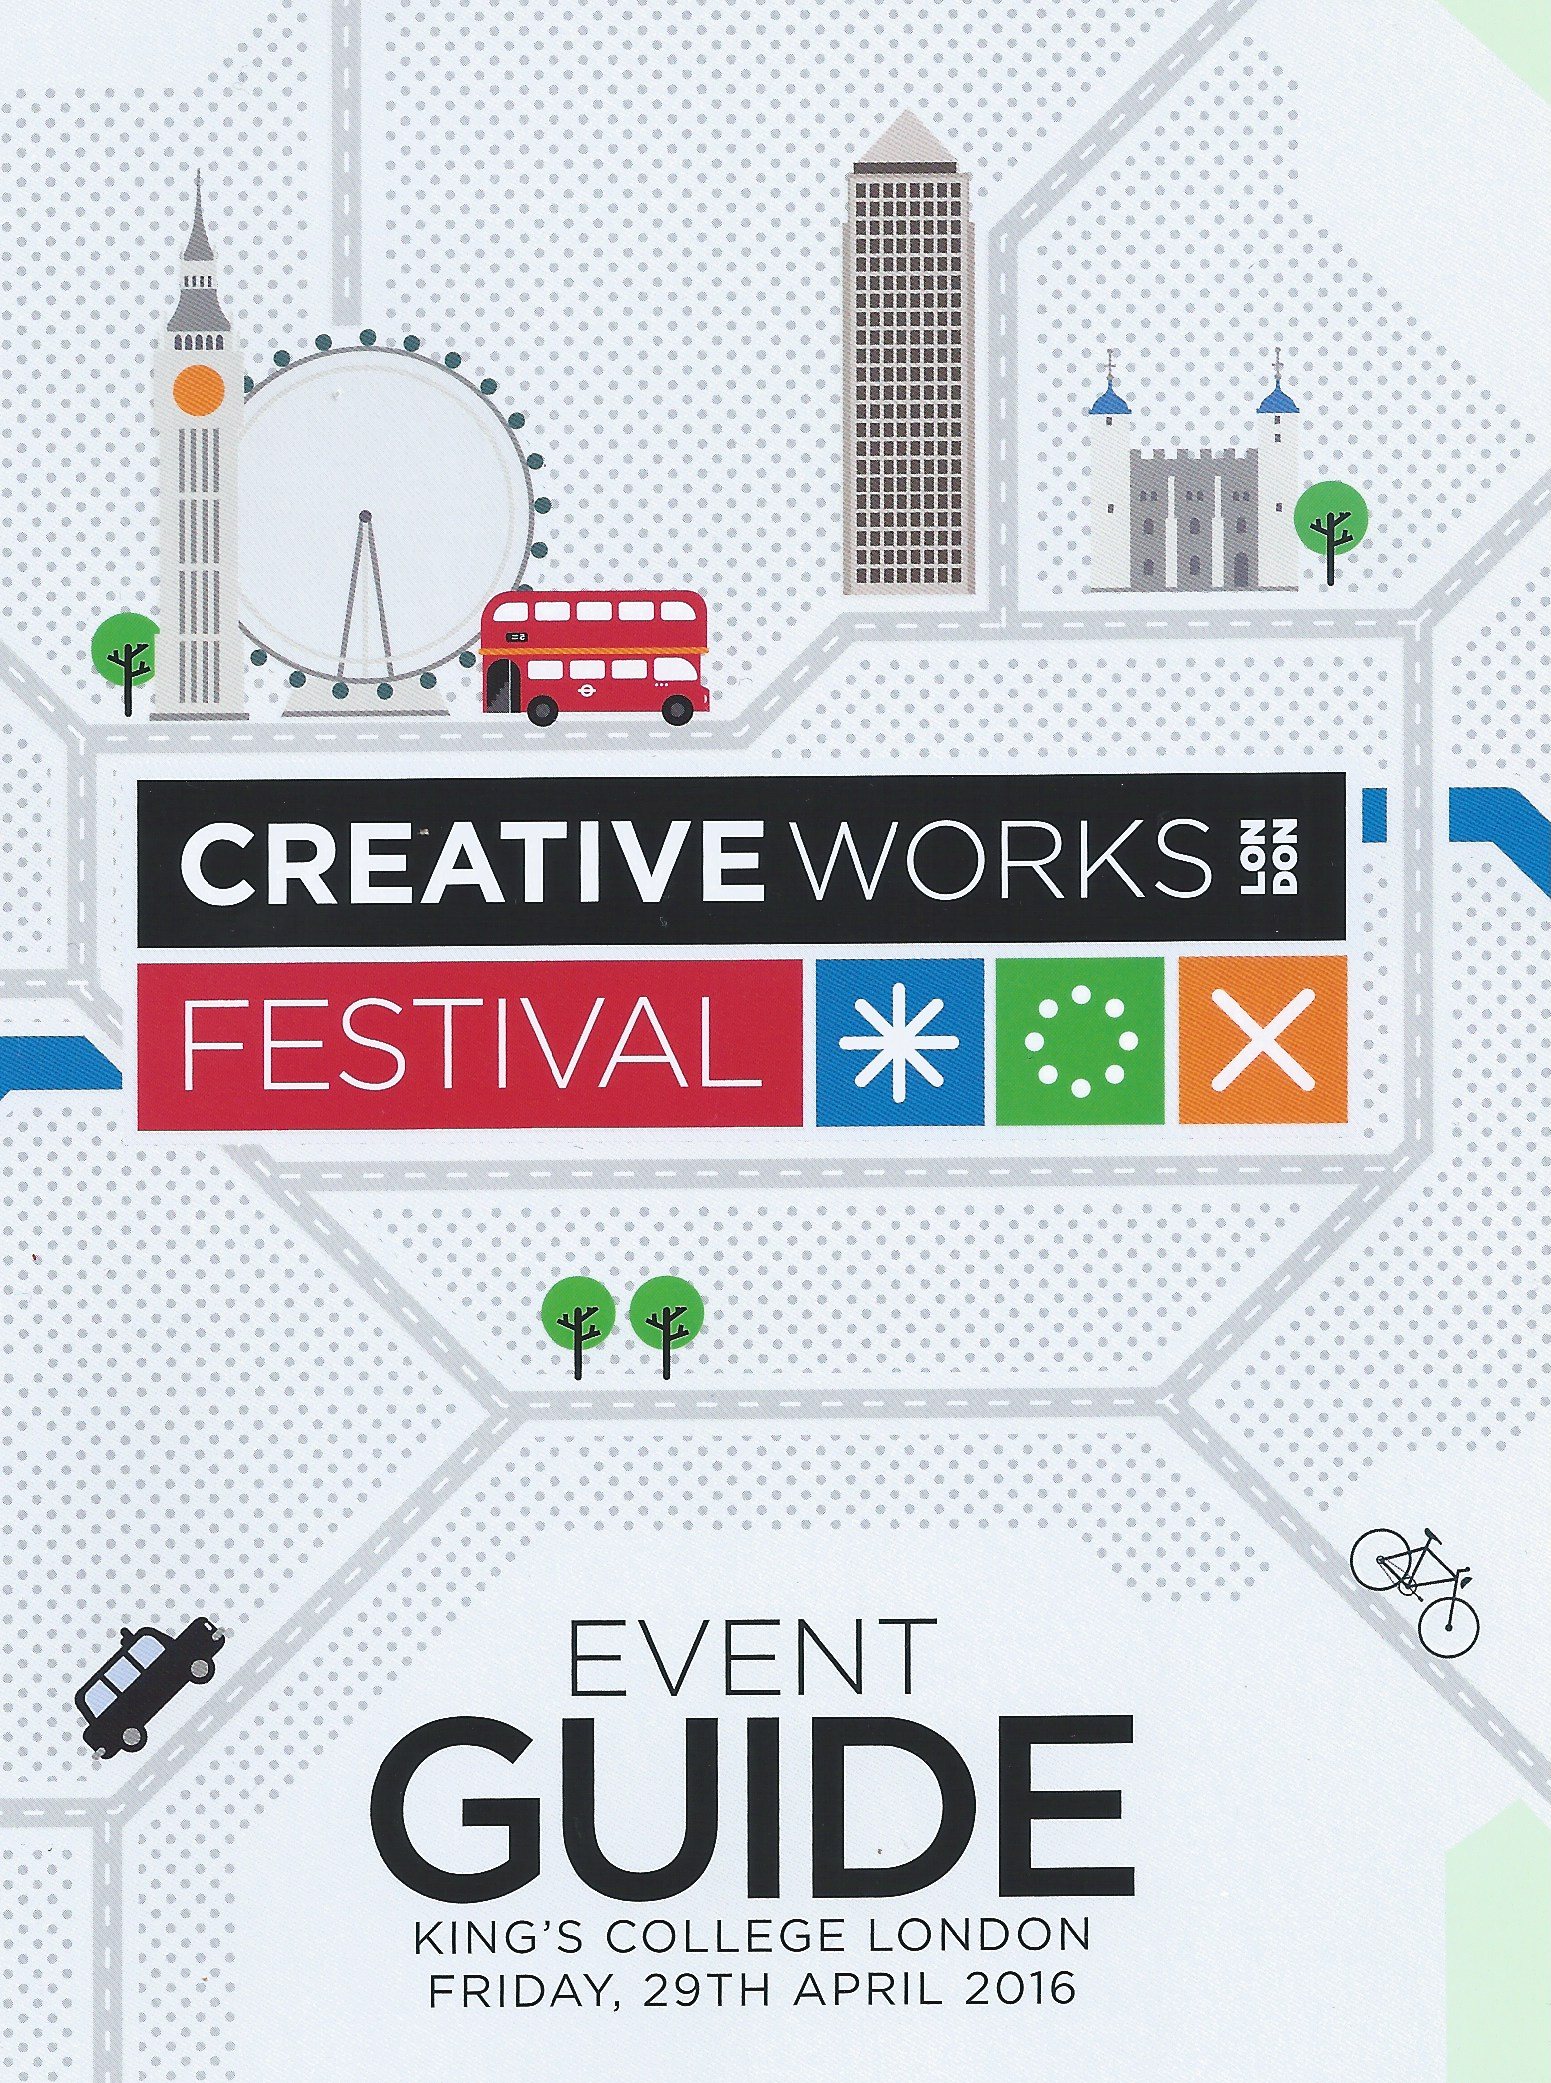 Creativeworks Festival cover